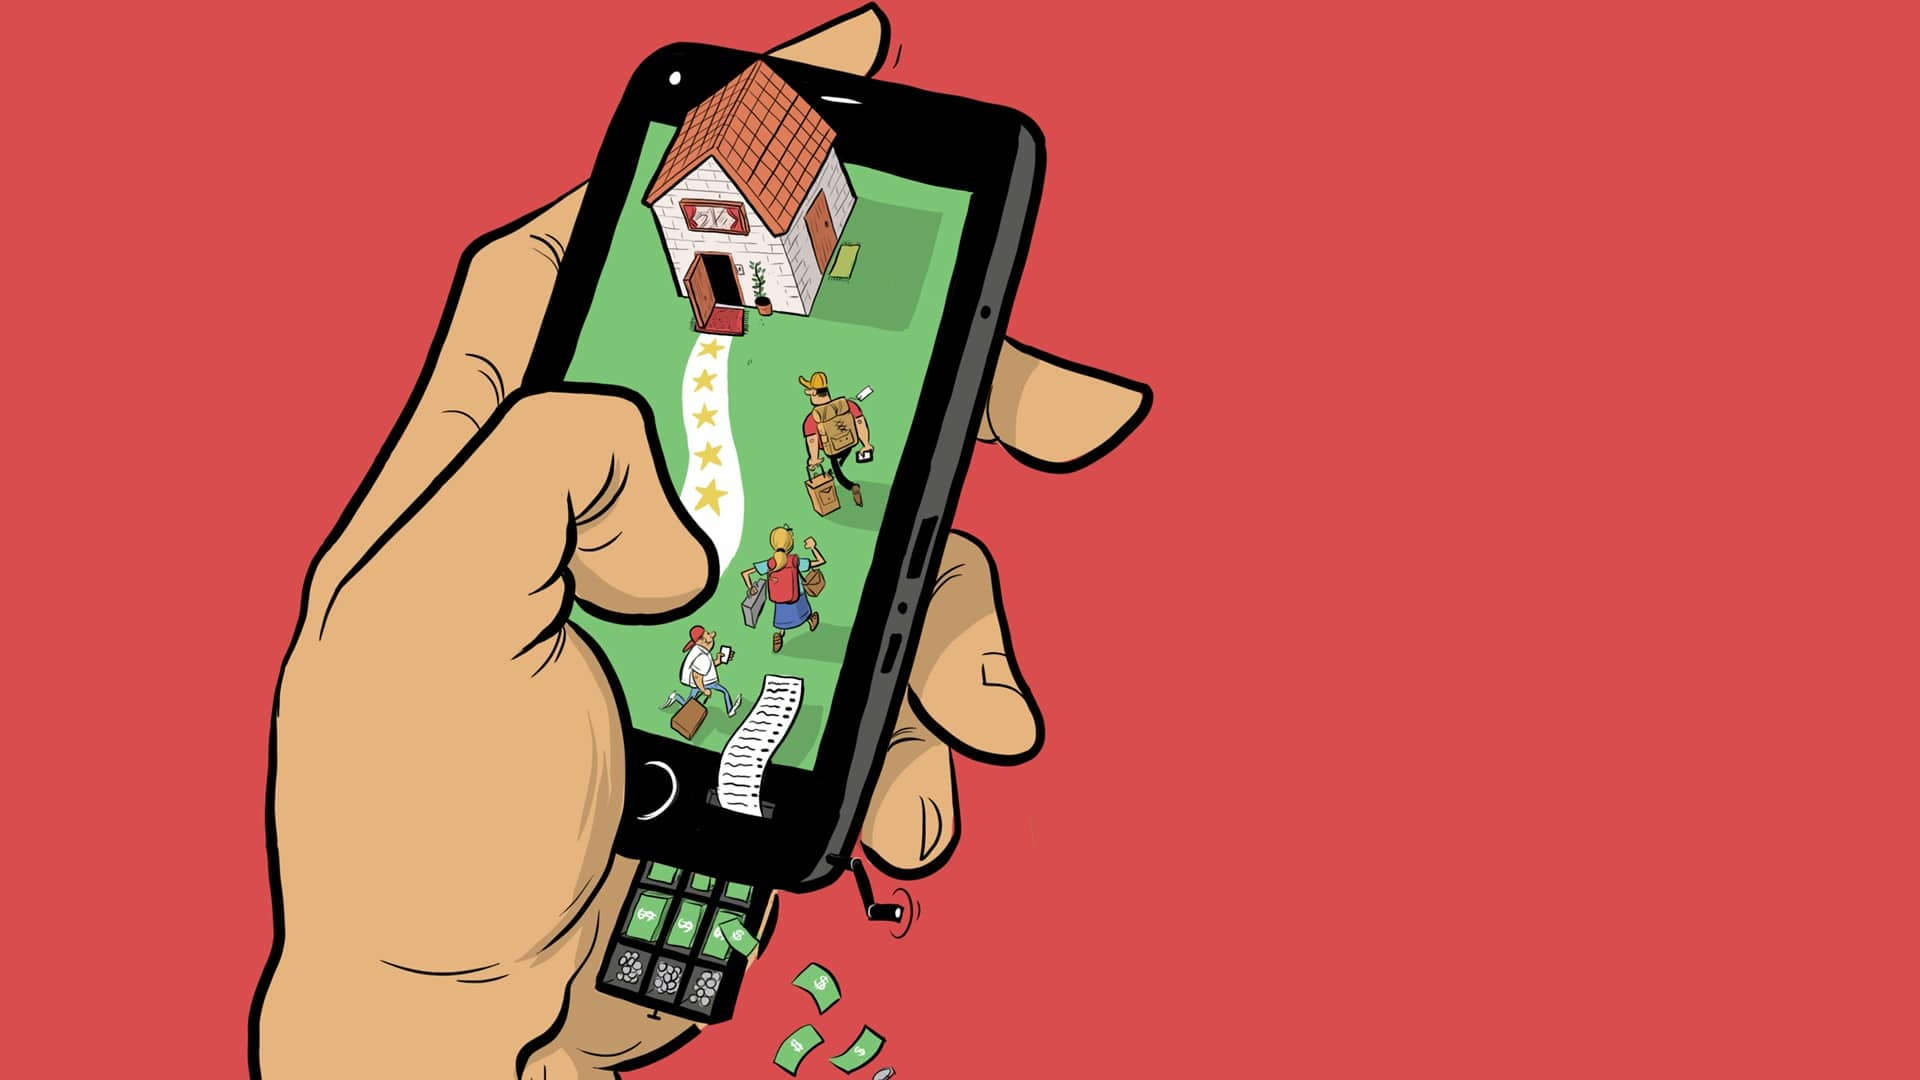 16-08-30 Mi Casa Su Casa Home Sharing, renting And The Tax Man- TD MoneyTalk Life Story Illustration Feat